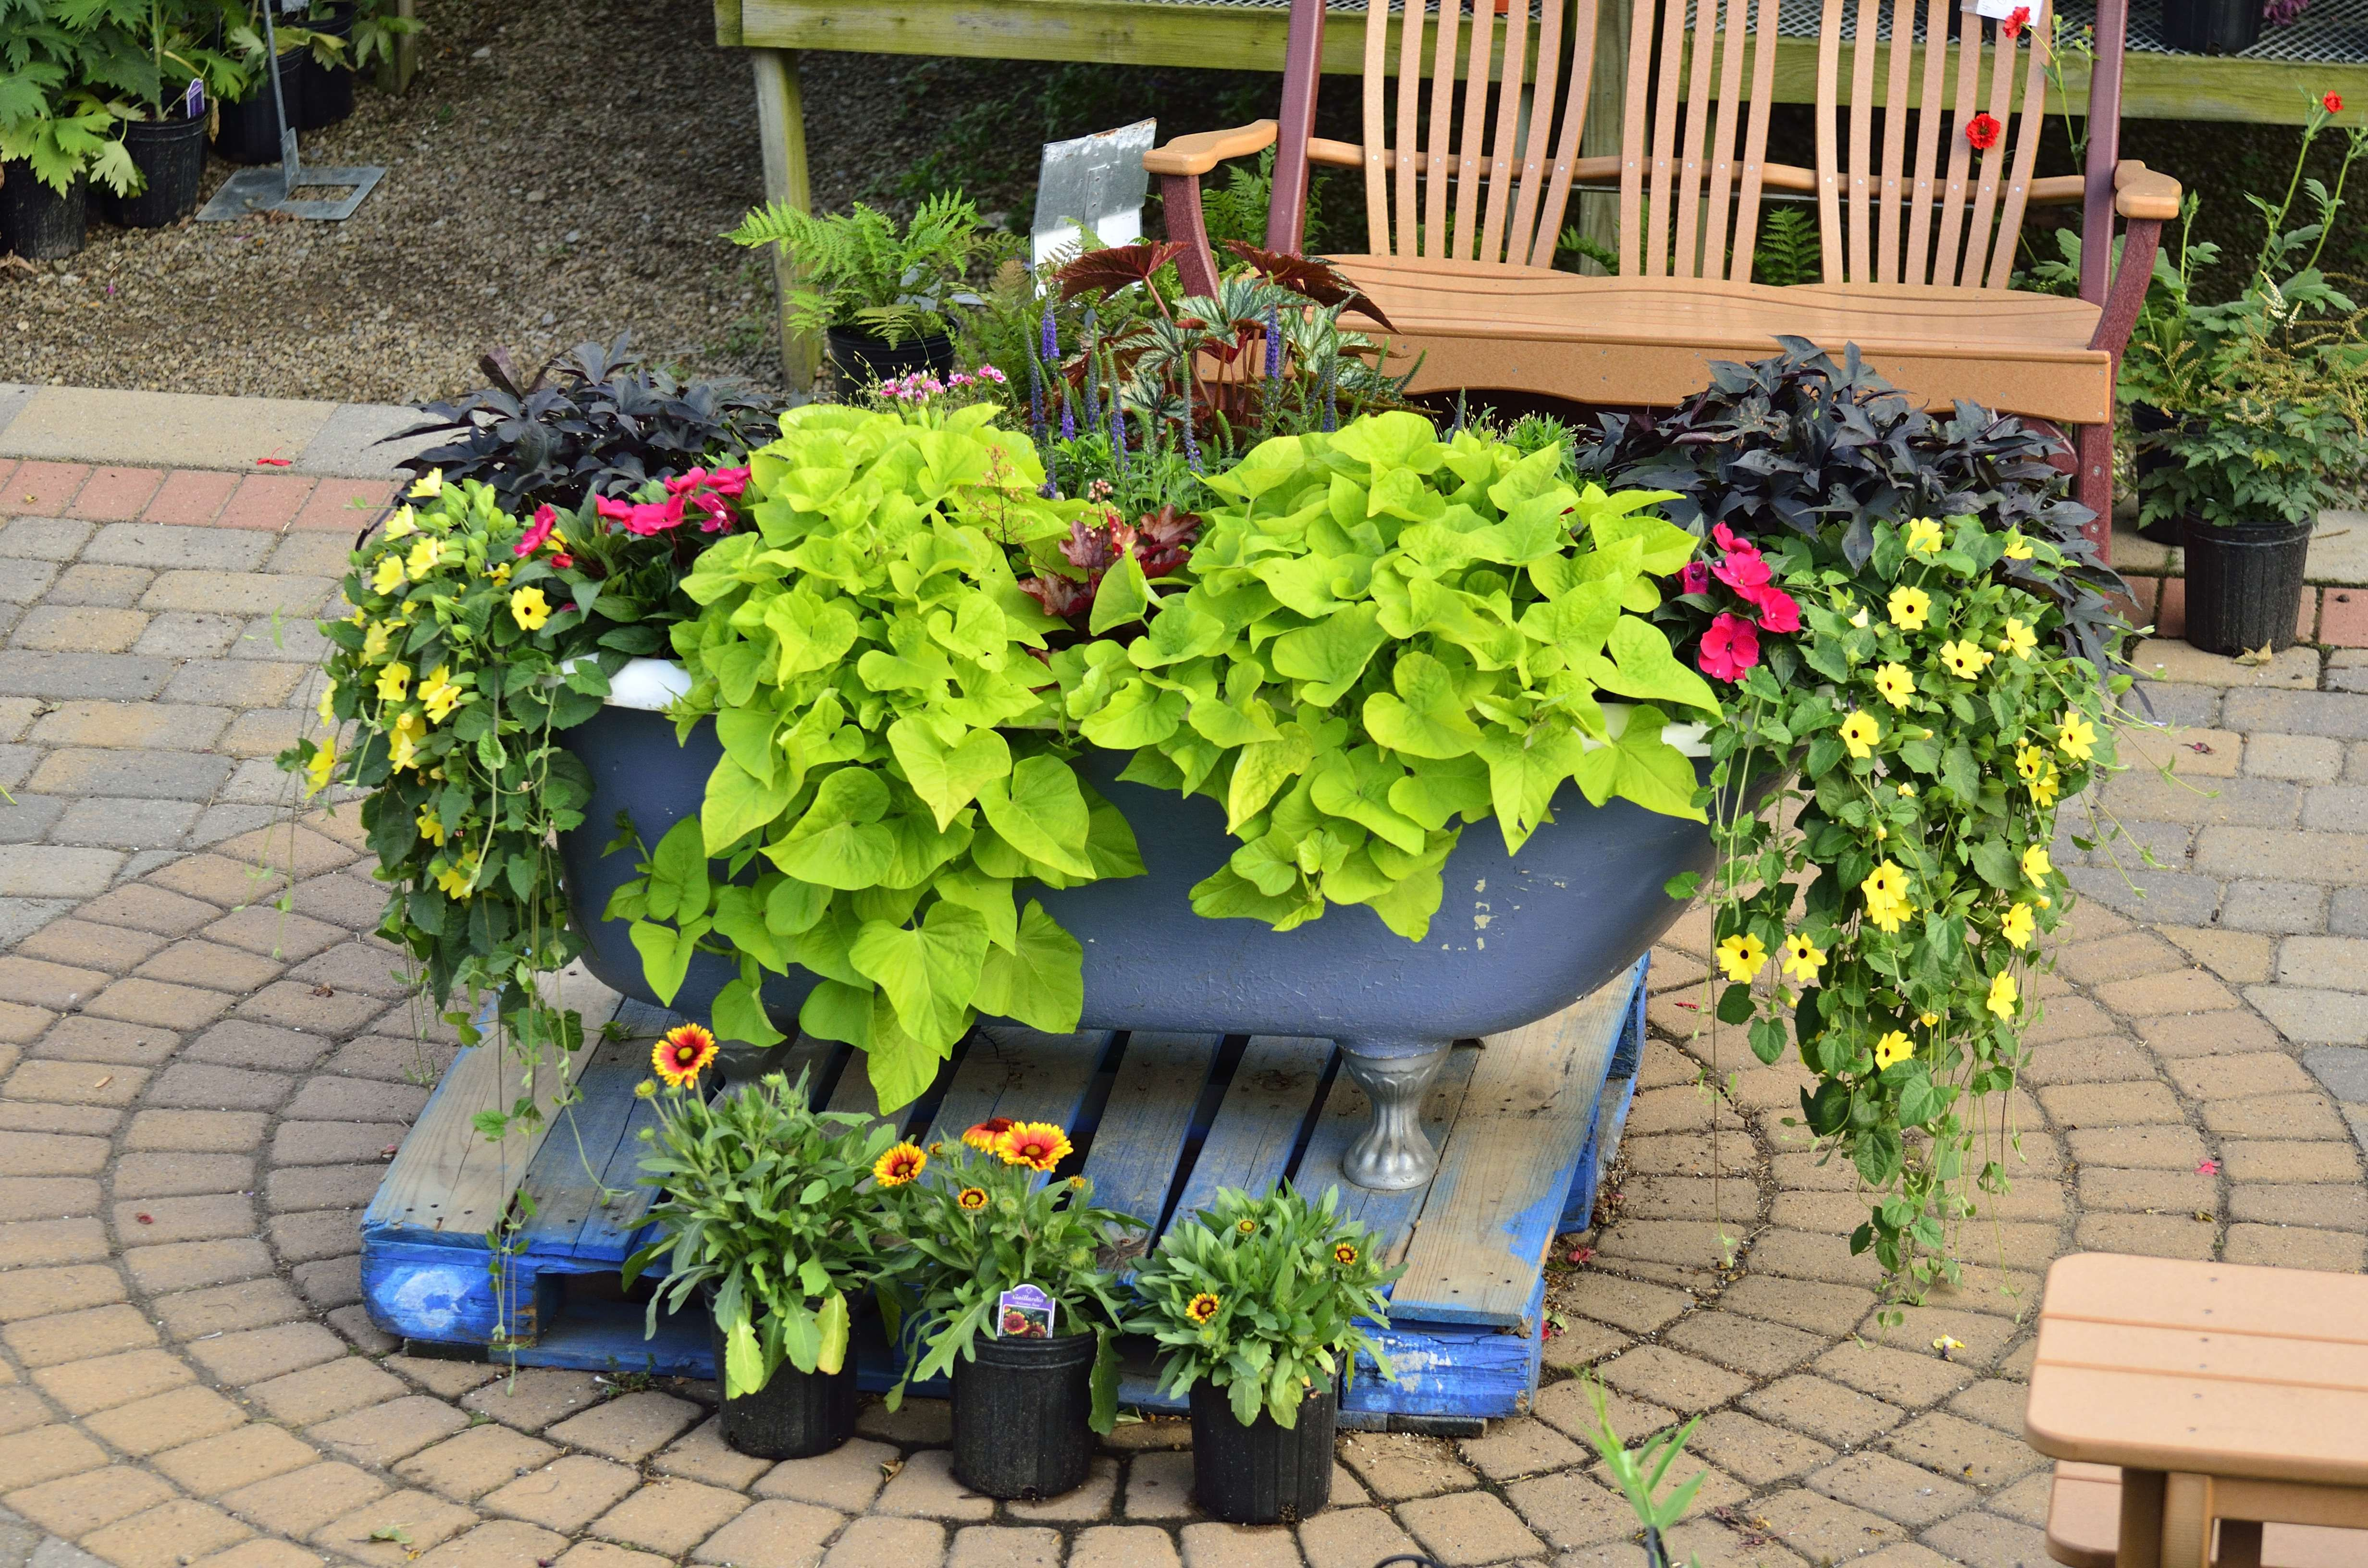 Nice Bathtub Planter With Ipomea, Thunbergia, Sunpatiens, Veronica, And Gryphon  Begonia